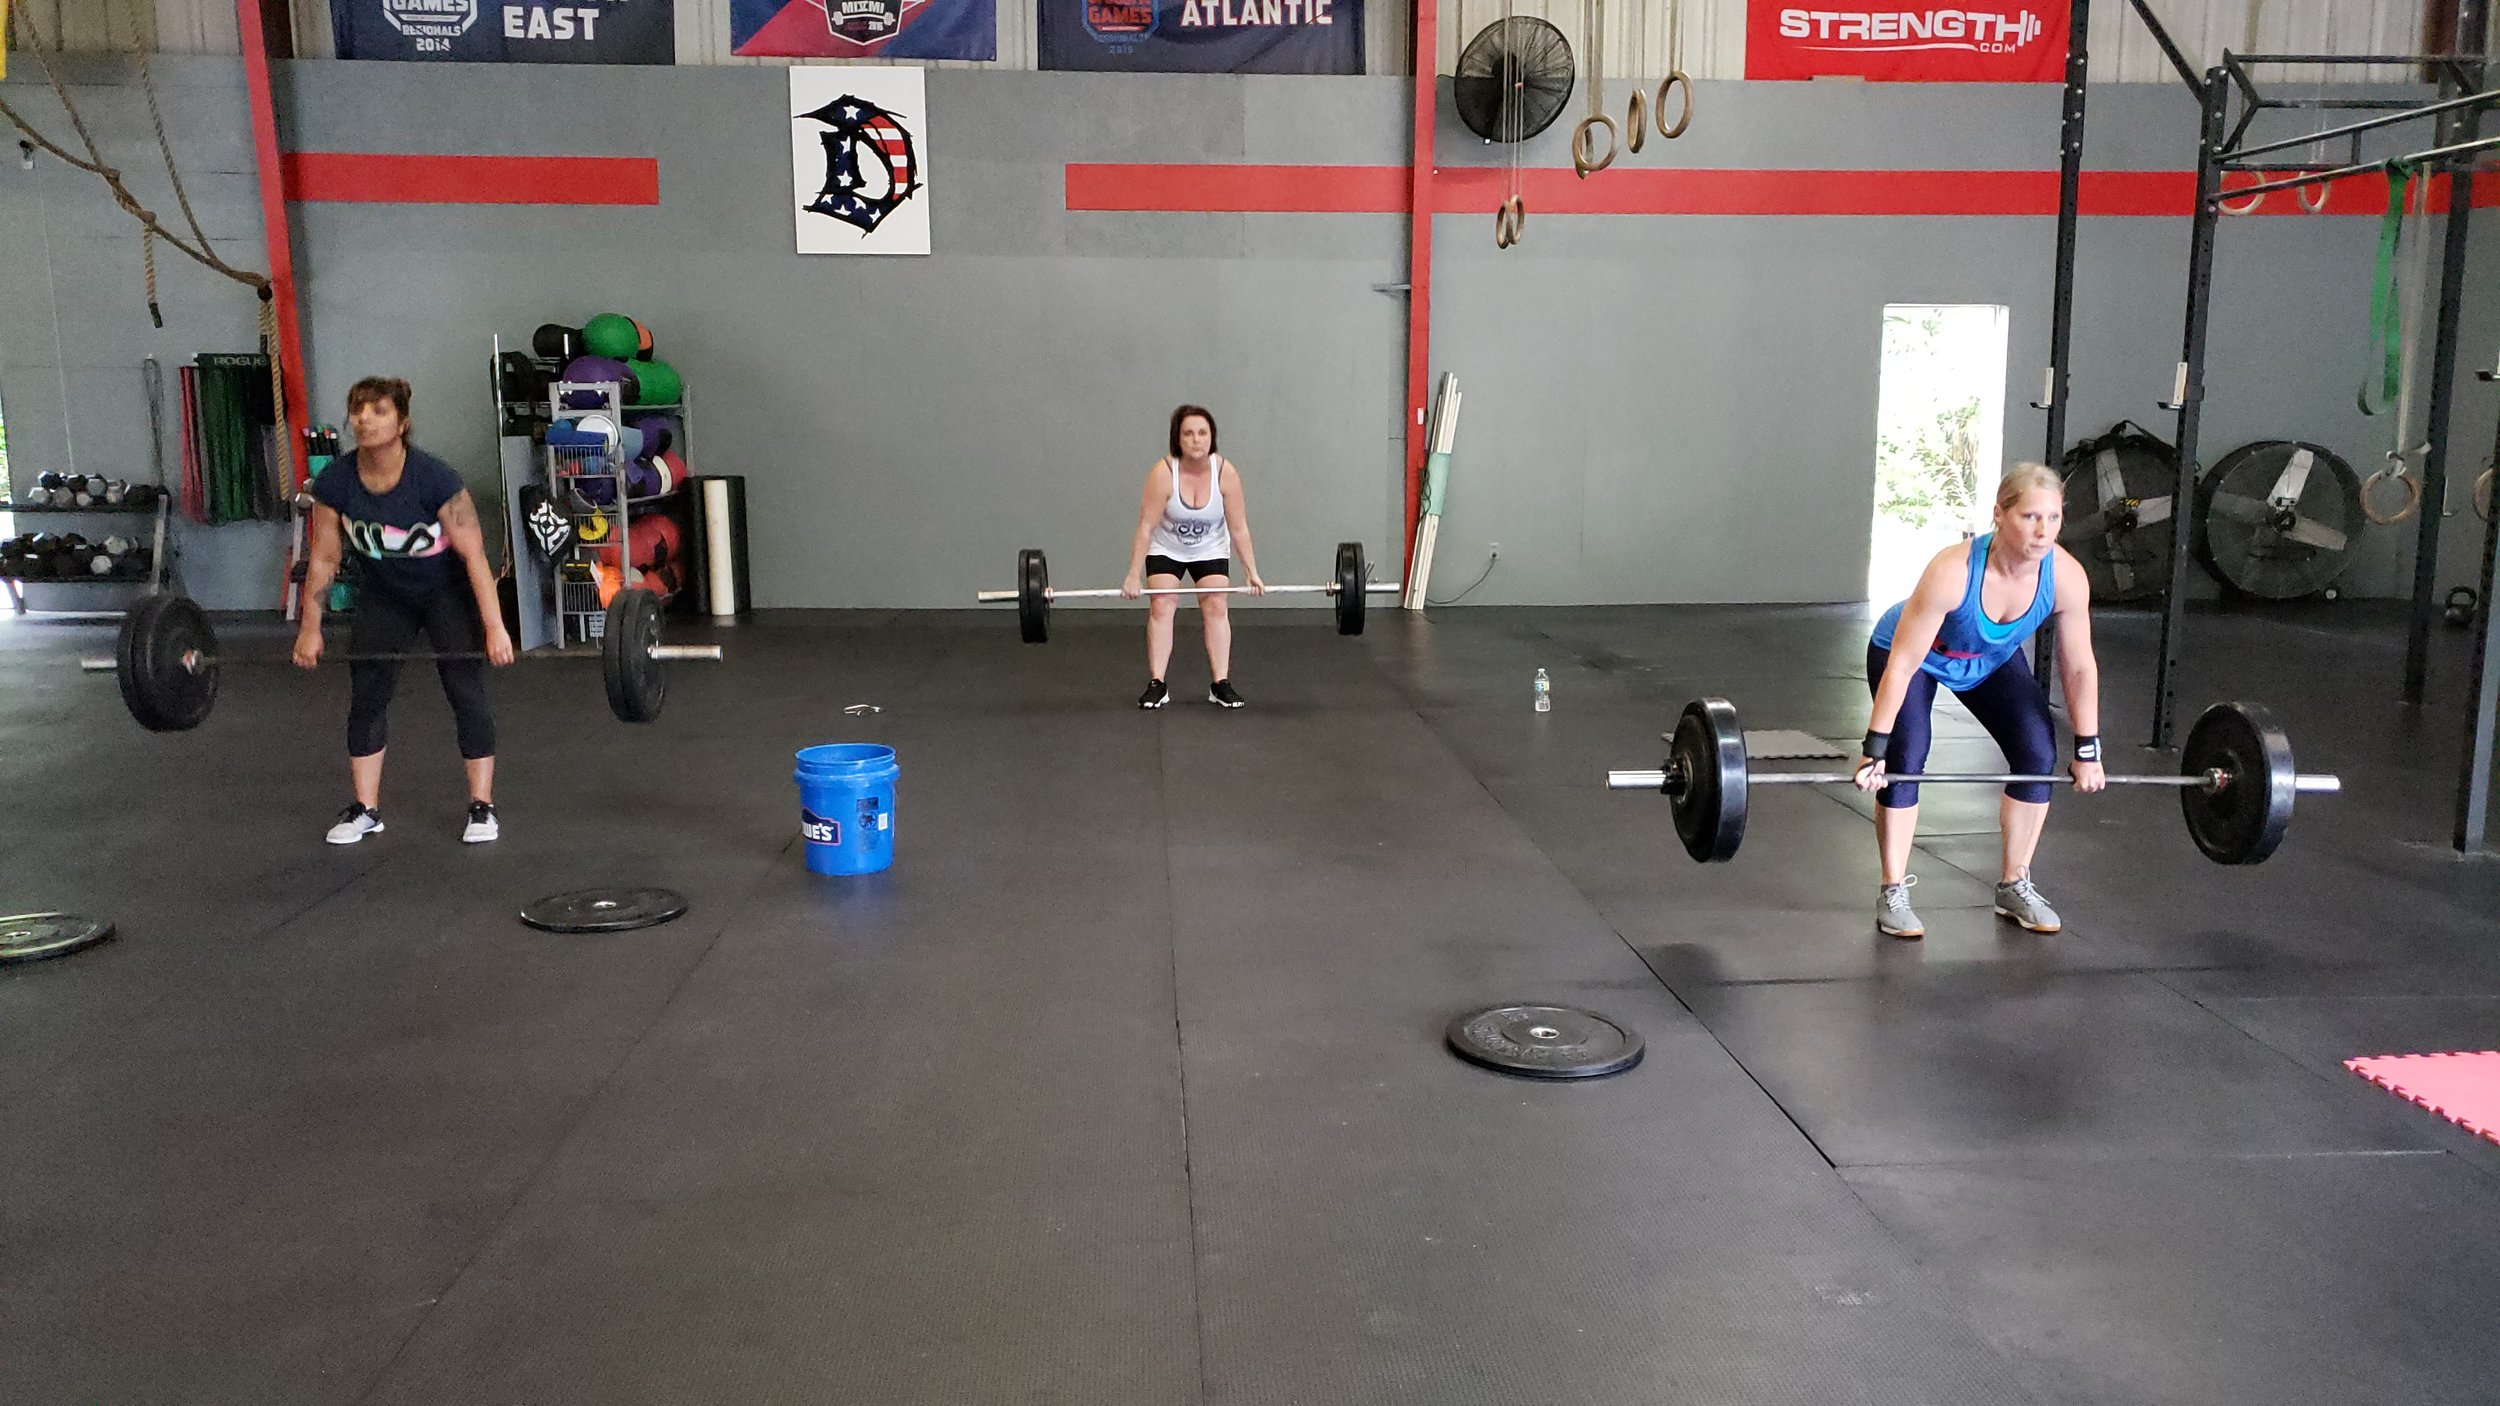 WOD CLASS - Constantly Varied, High Intensity, Functional Movement!A program that combines strength training and barbell/dumbbell cycling with metcons (a.k.a. metabolic conditioning).The constantly varied programming is designed so that you will never get bored, and more importantly, never hit any plateaus! Suitable for ALL fitness levels ages 10-99.